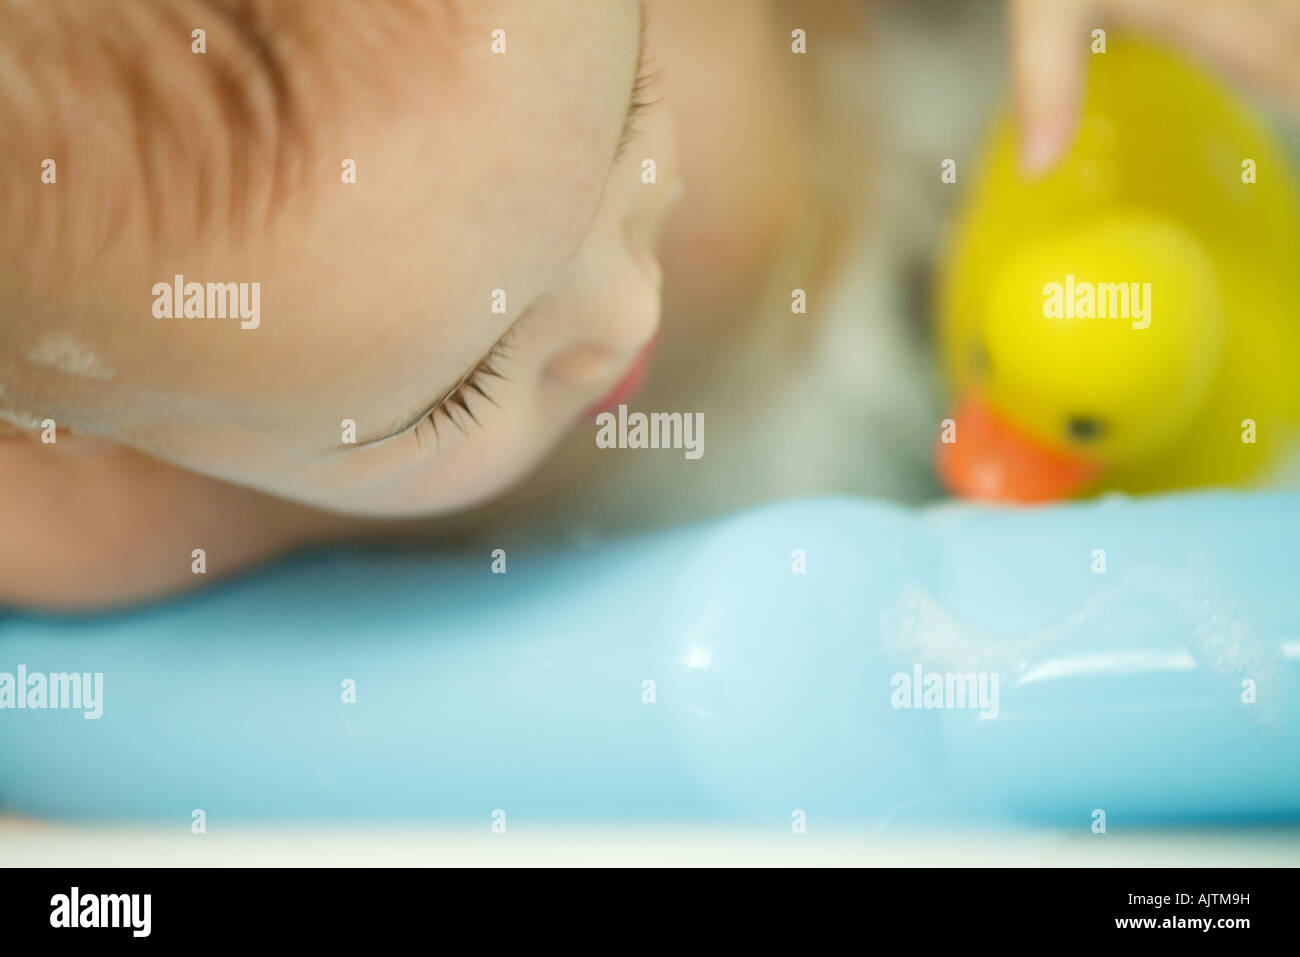 Baby taking bath, extreme close-up, cropped view - Stock Image